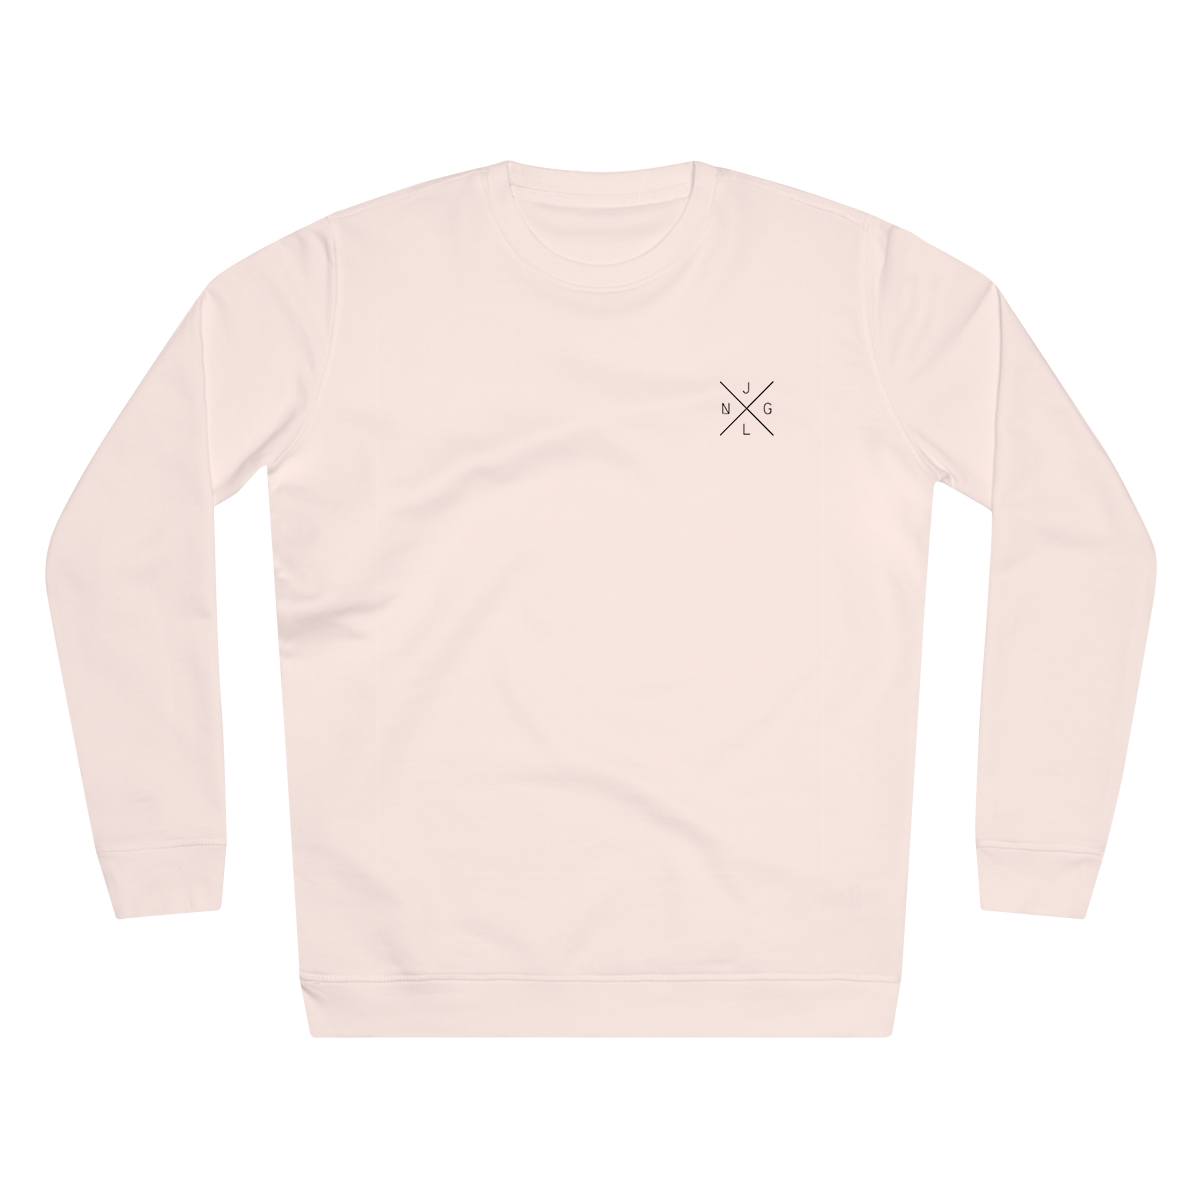 JNGL Clothing - The Classic V1 Sweater // Candy Pink - Front (Stock)